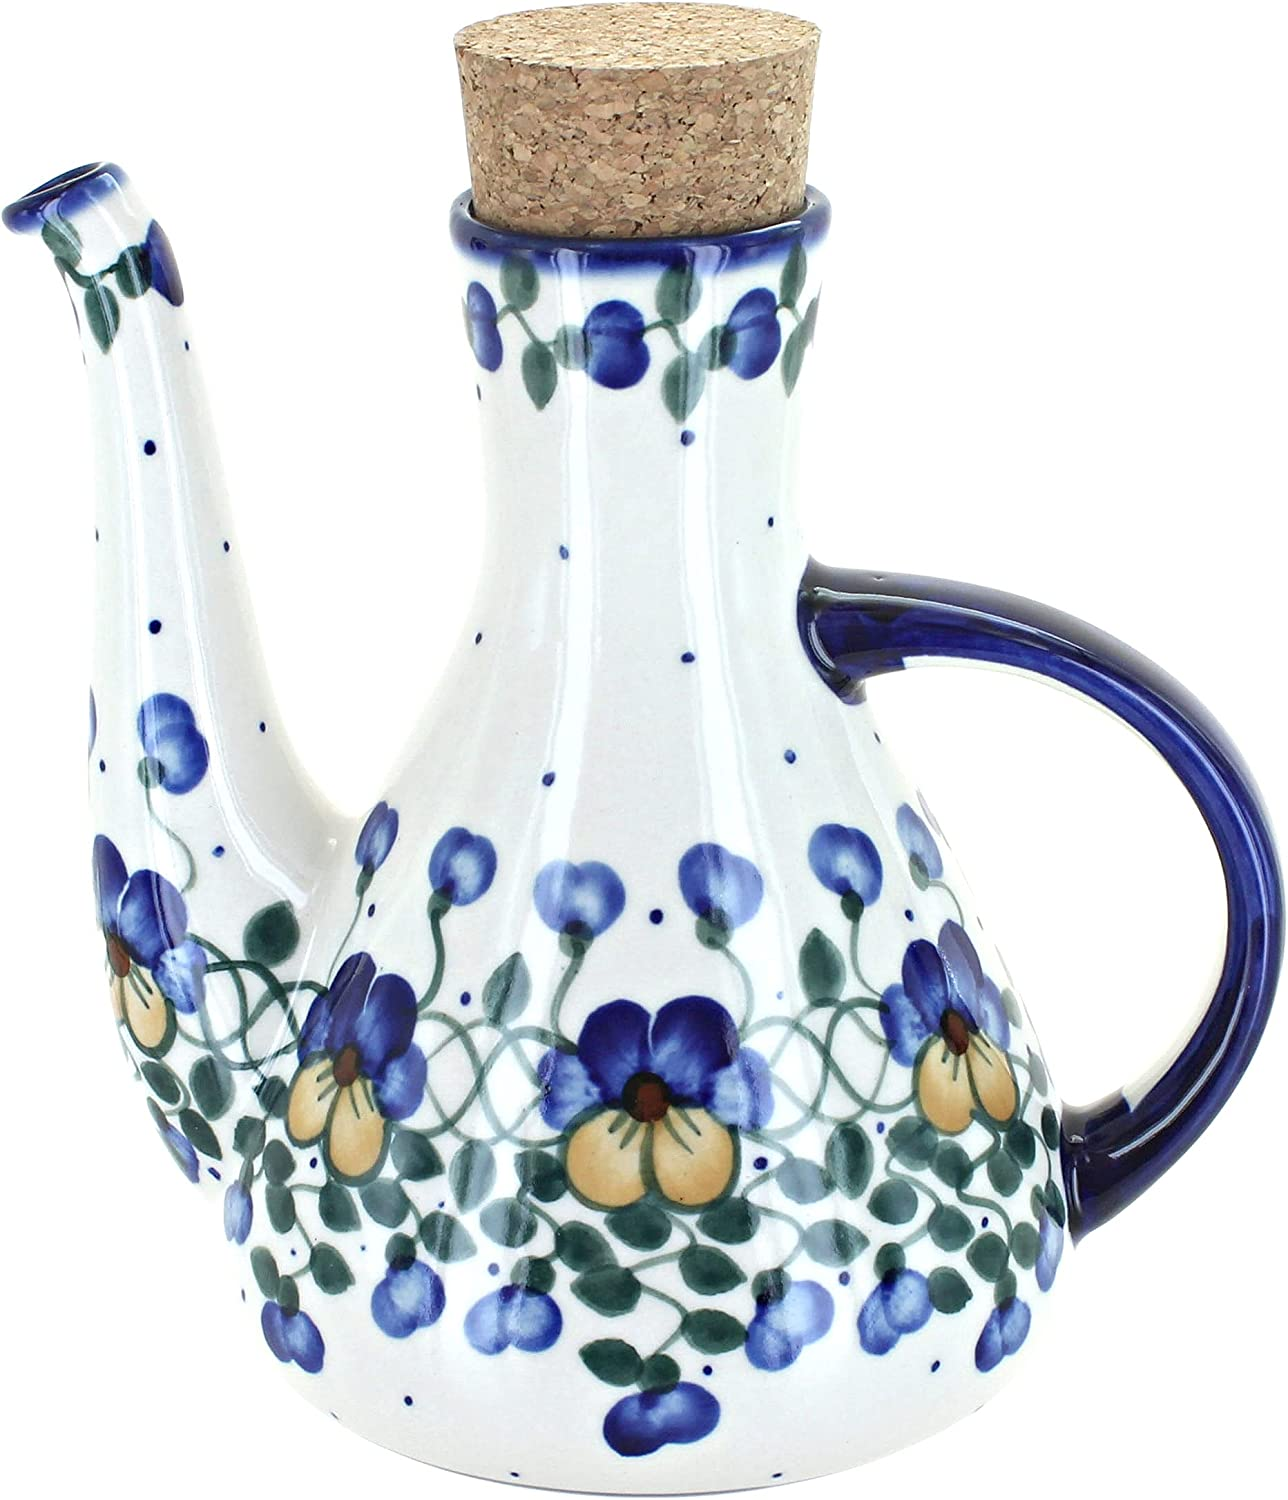 Blue Rose Polish Pottery Super sale period limited Oil Container Olive Max 79% OFF Pansies